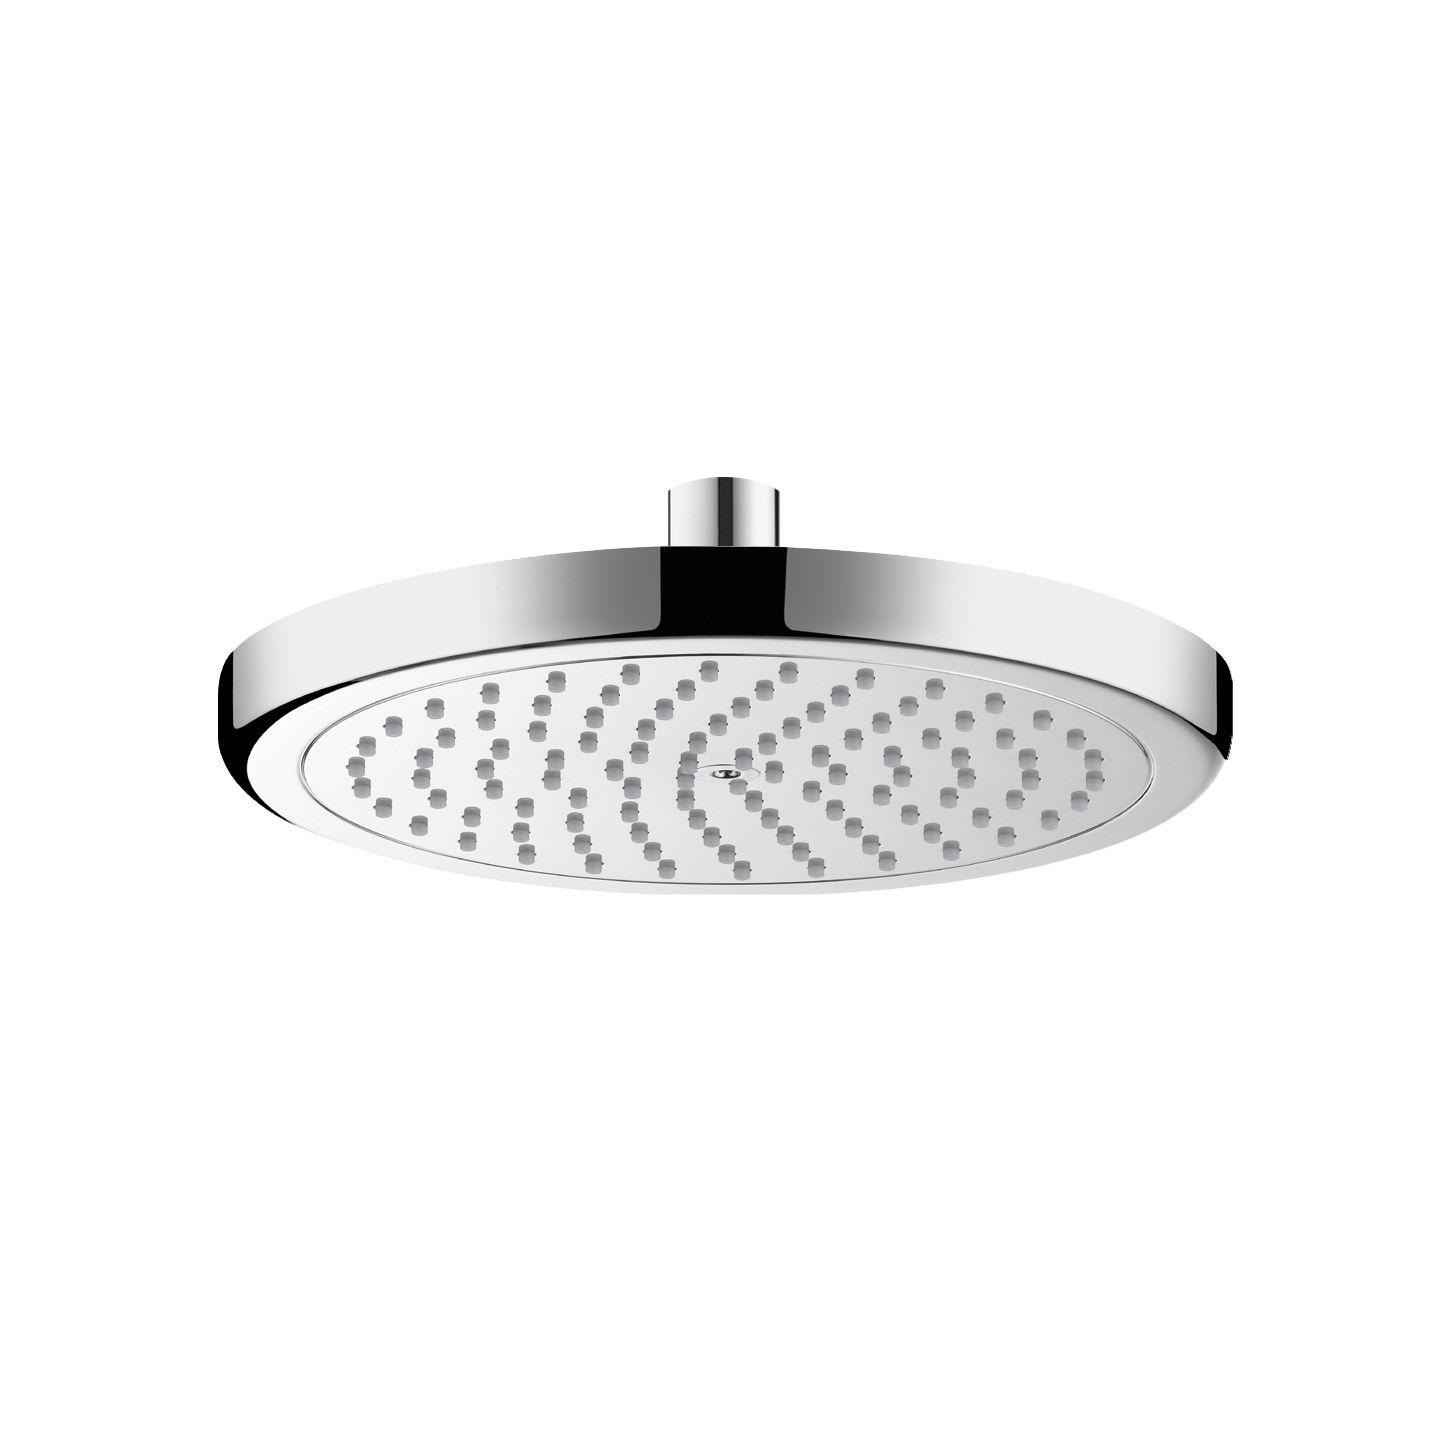 Hansgrohe 26465001 Chrome Croma Rain 2.5 GPM Shower Head - Faucet.com